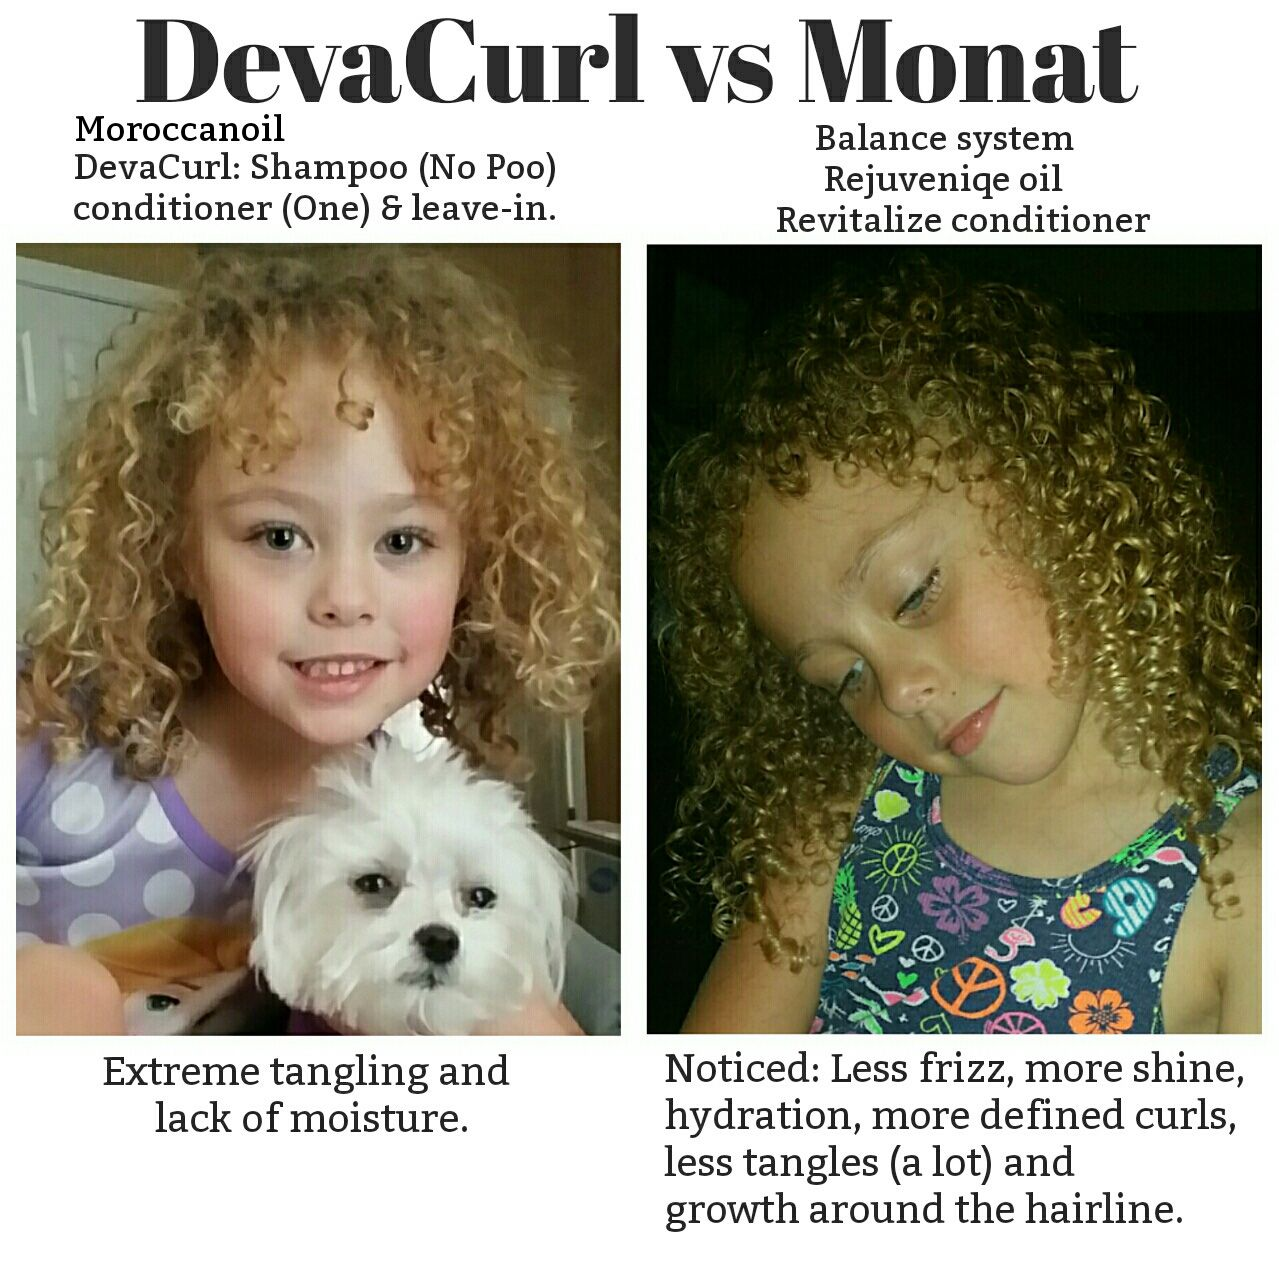 Does Monat Really Work? Monat Review (With images